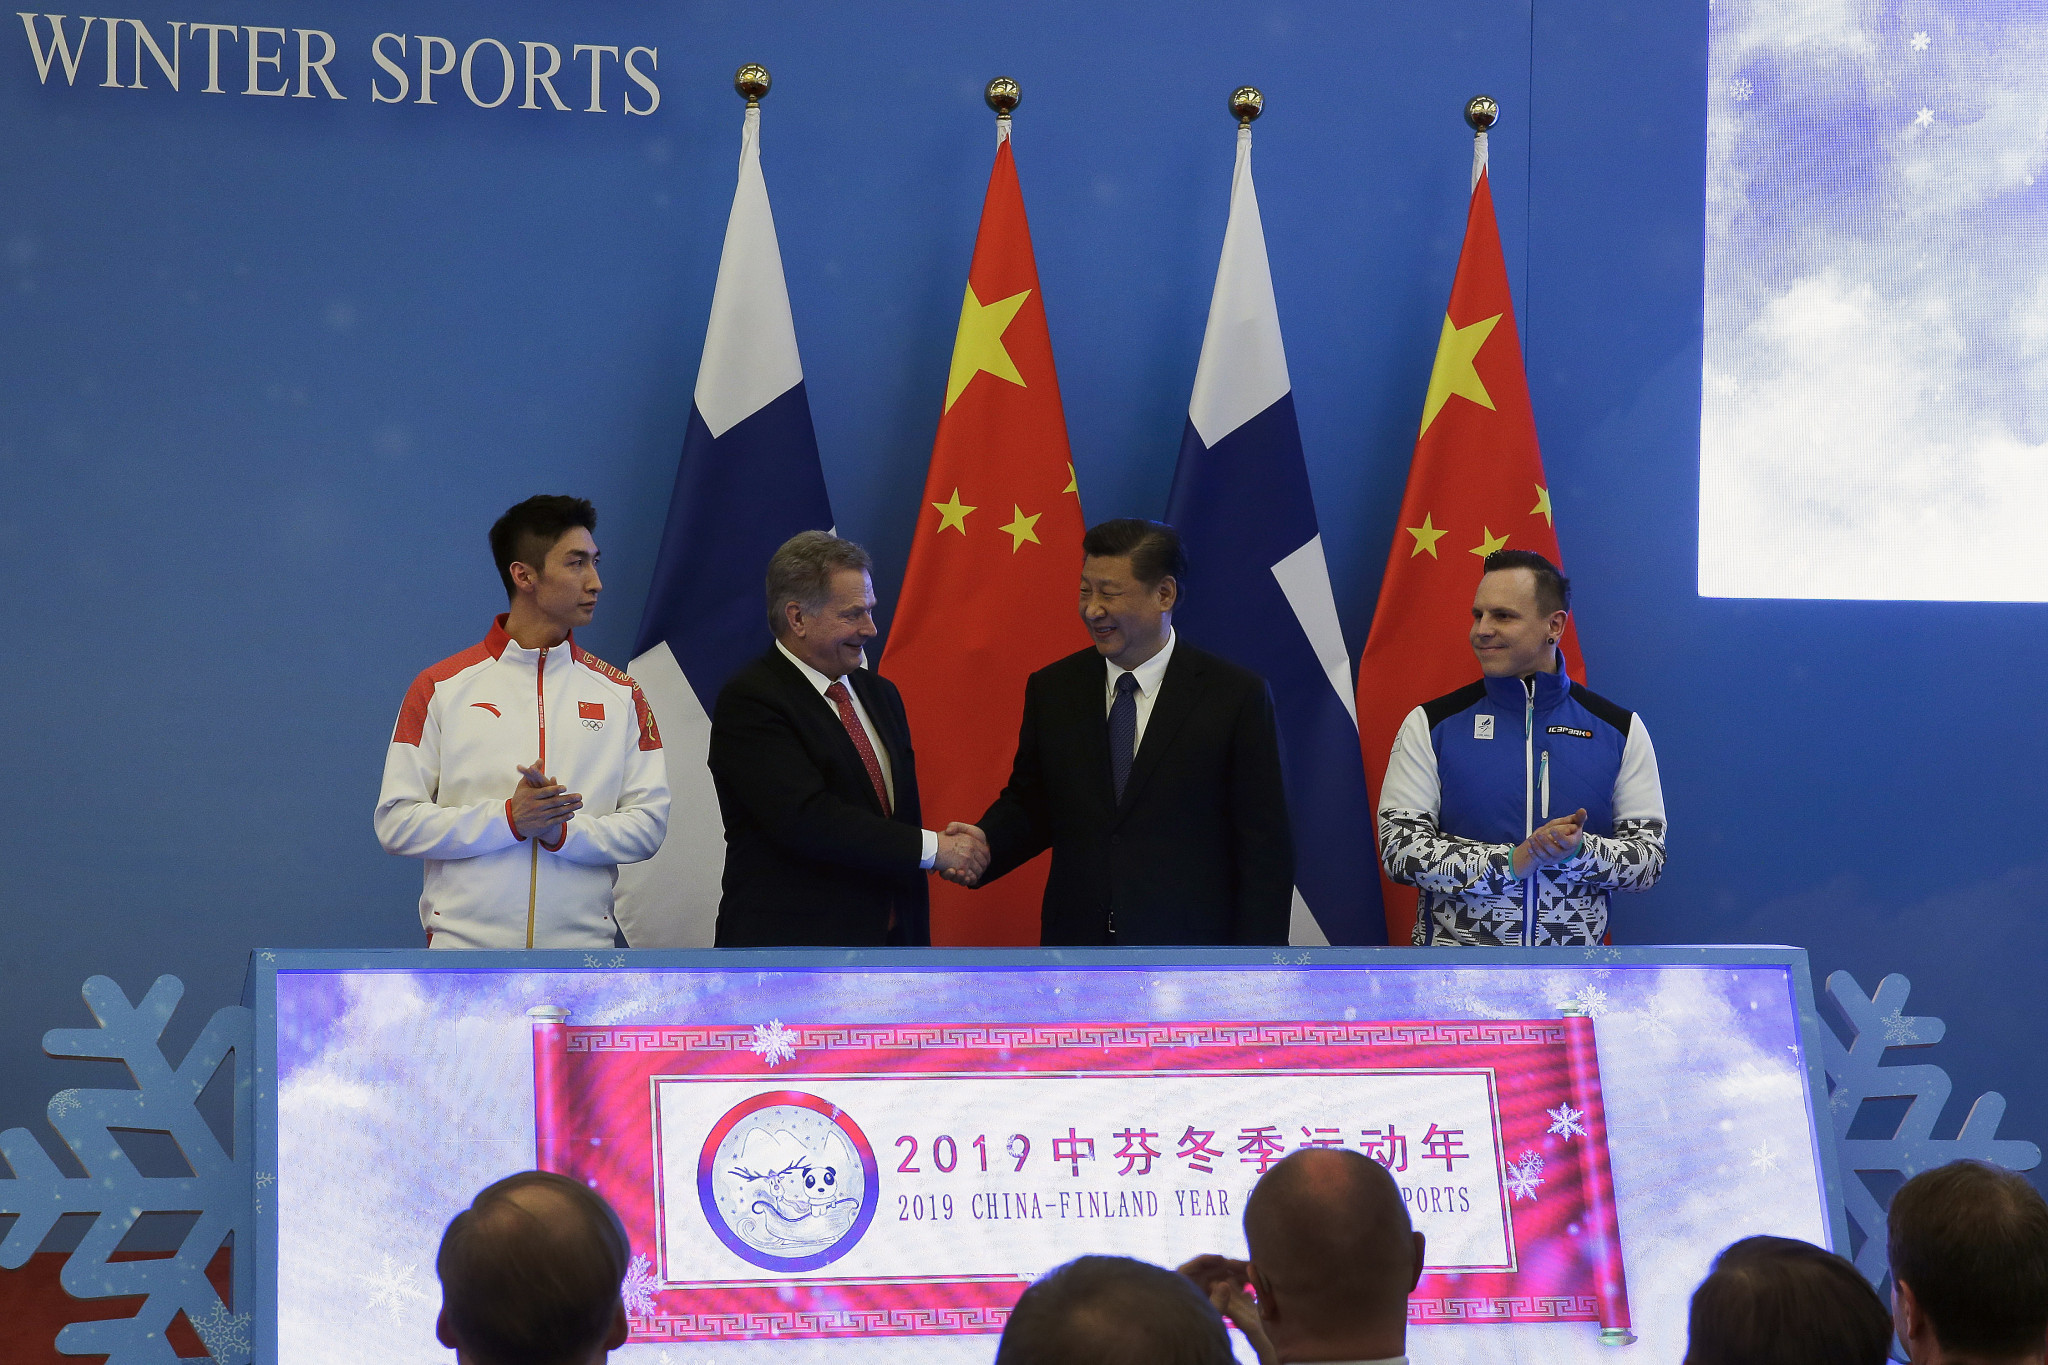 In January, Finland and China launched the